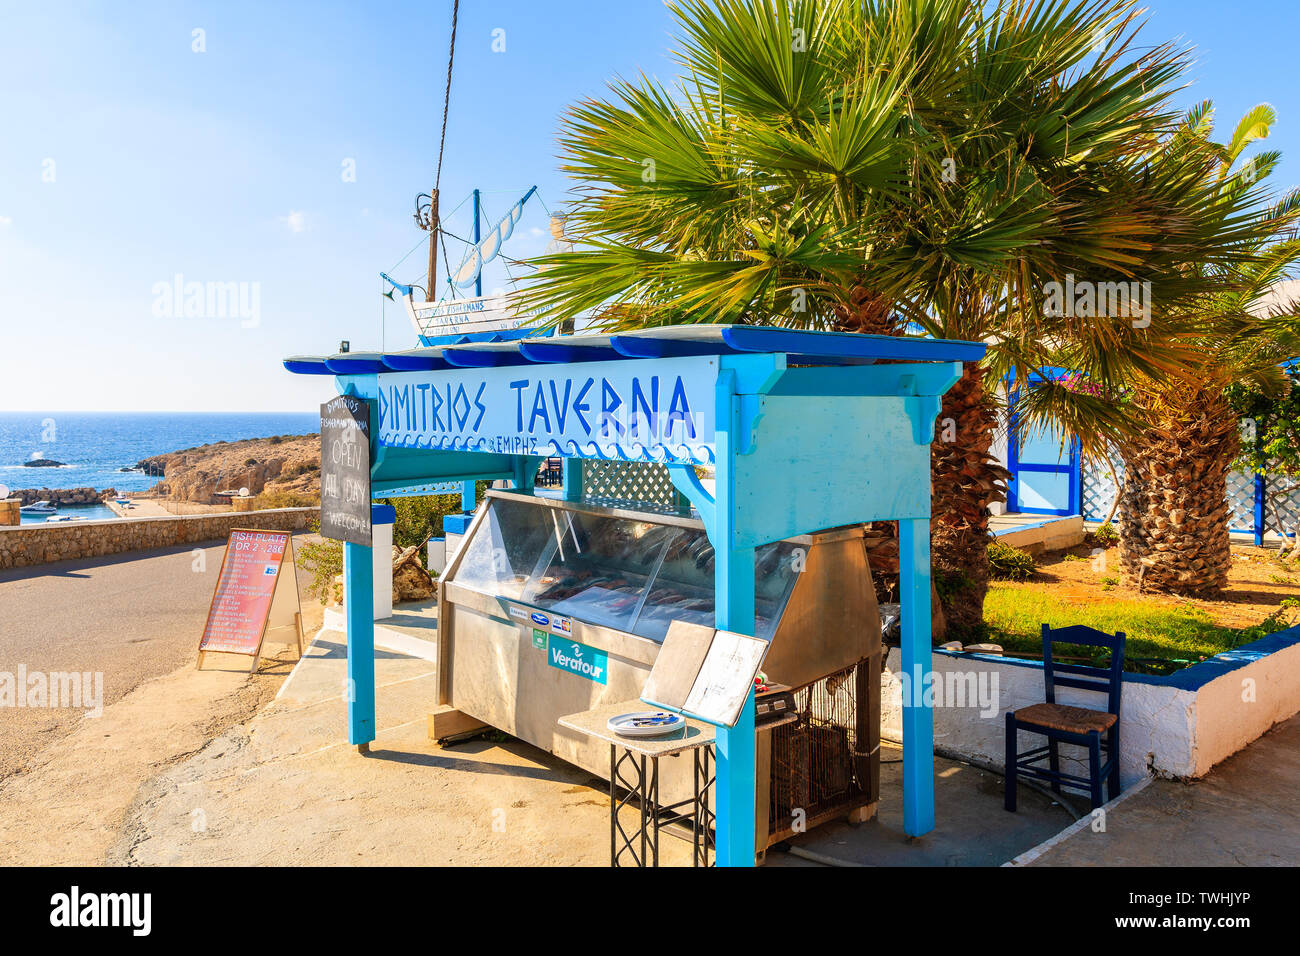 FINIKI PORT, KARPATHOS ISLAND - SEP 25, 2018: Stand presenting fresh fish to eat in taverna restaurant in village on coast of Karpathos island, Greece Stock Photo